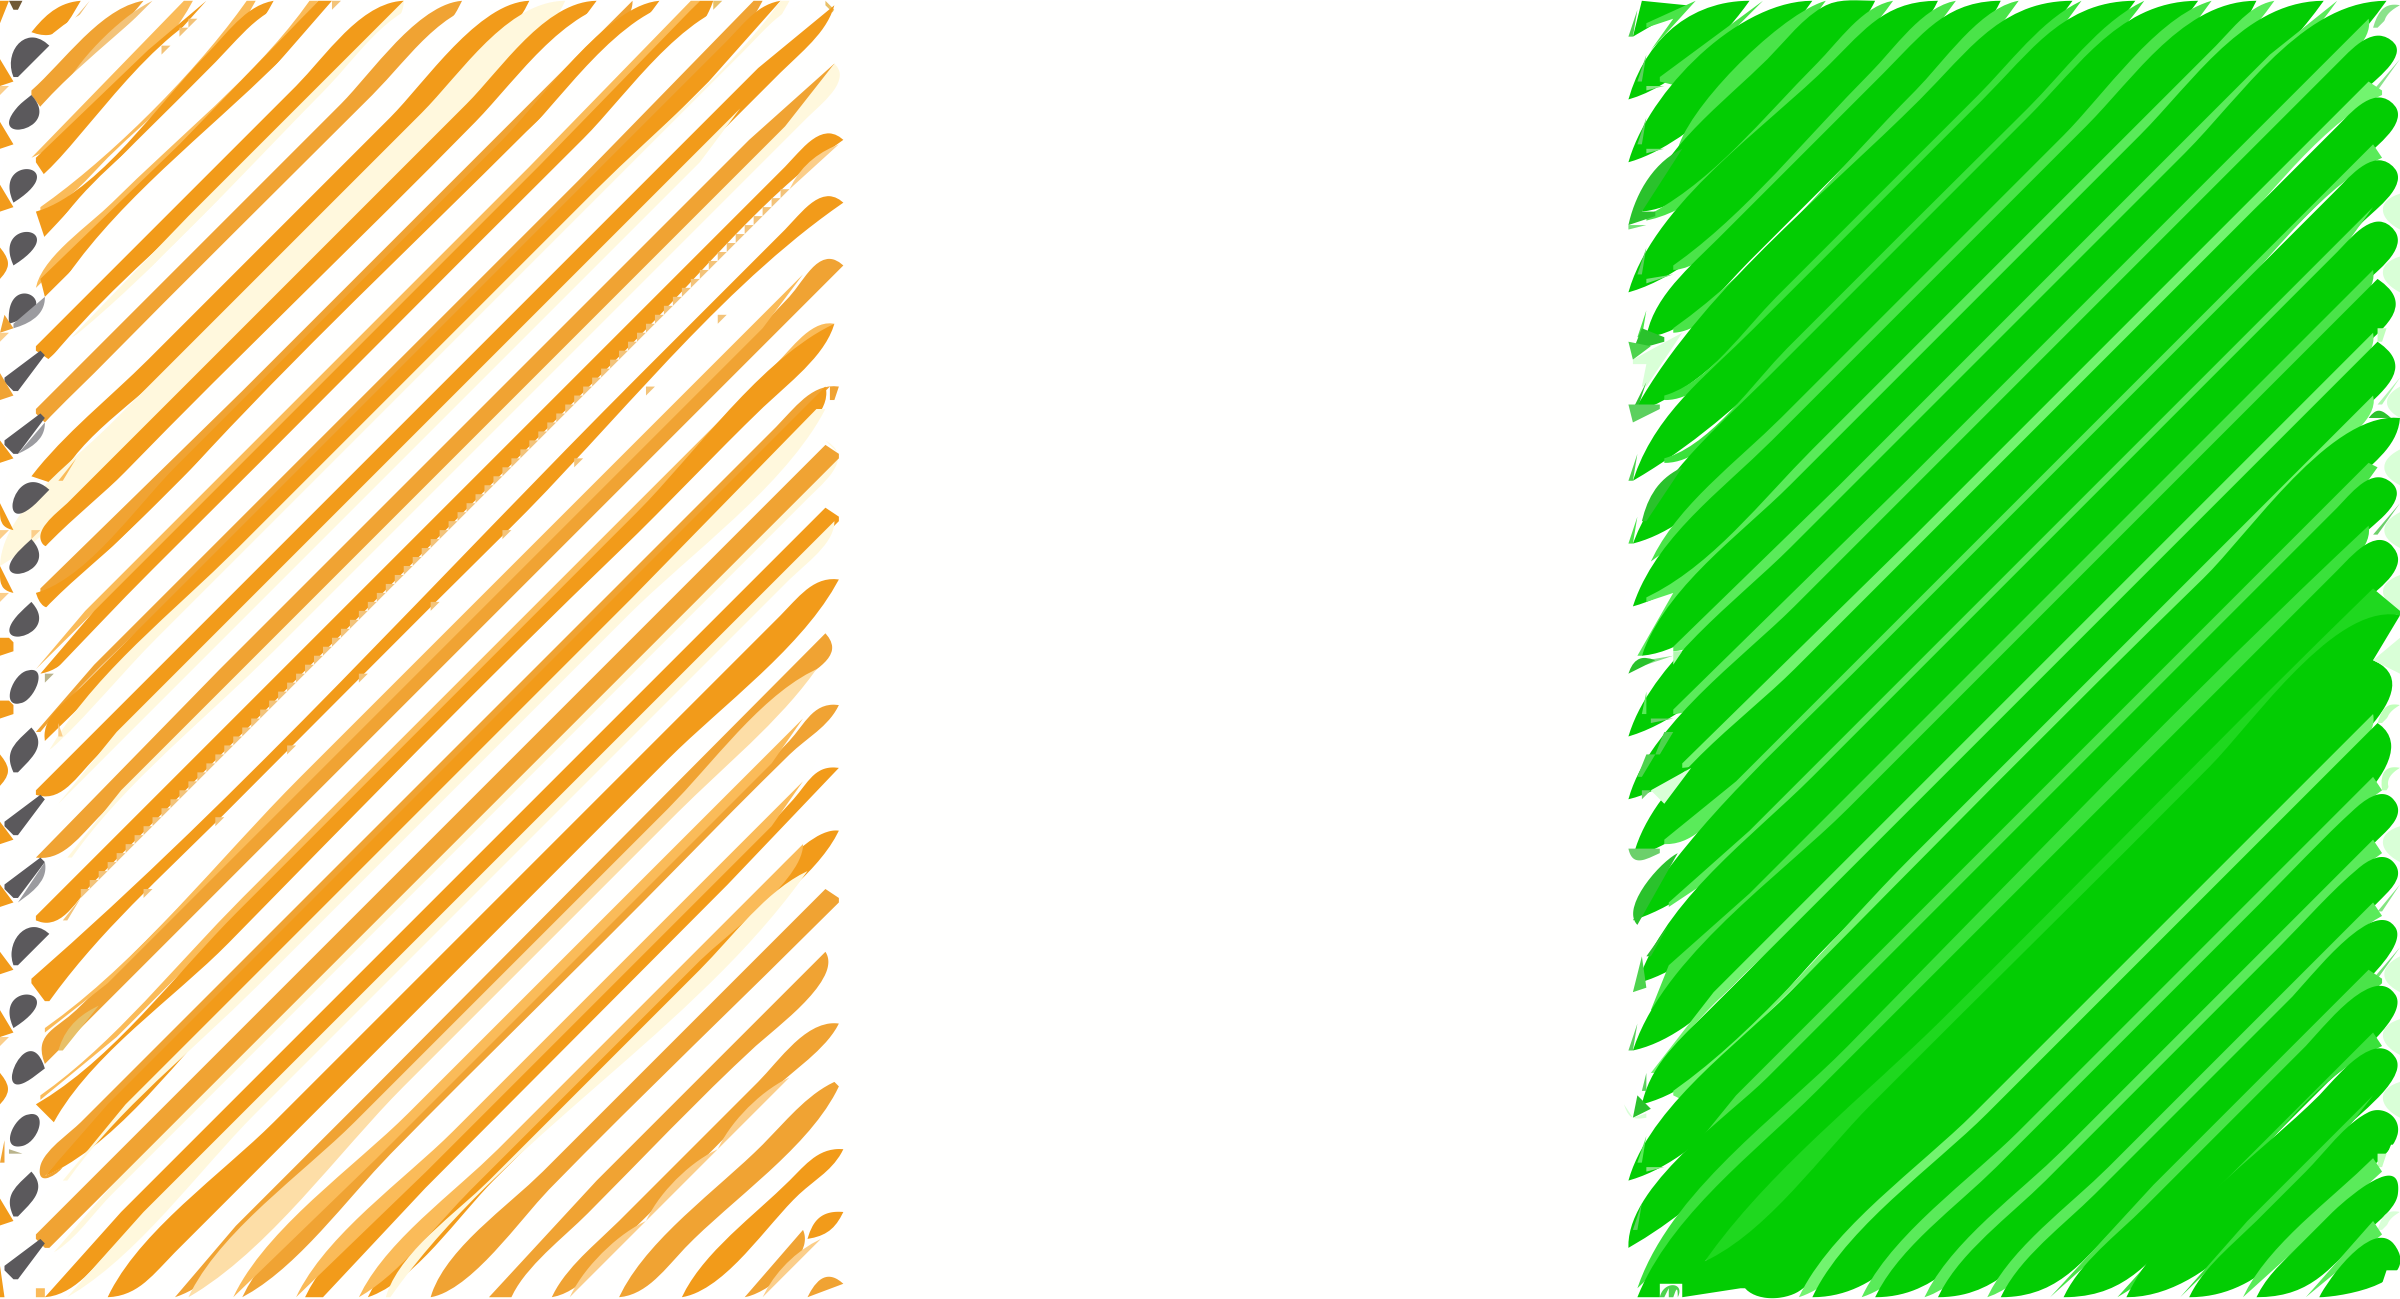 Cote DIvoire flag linear by Joesph